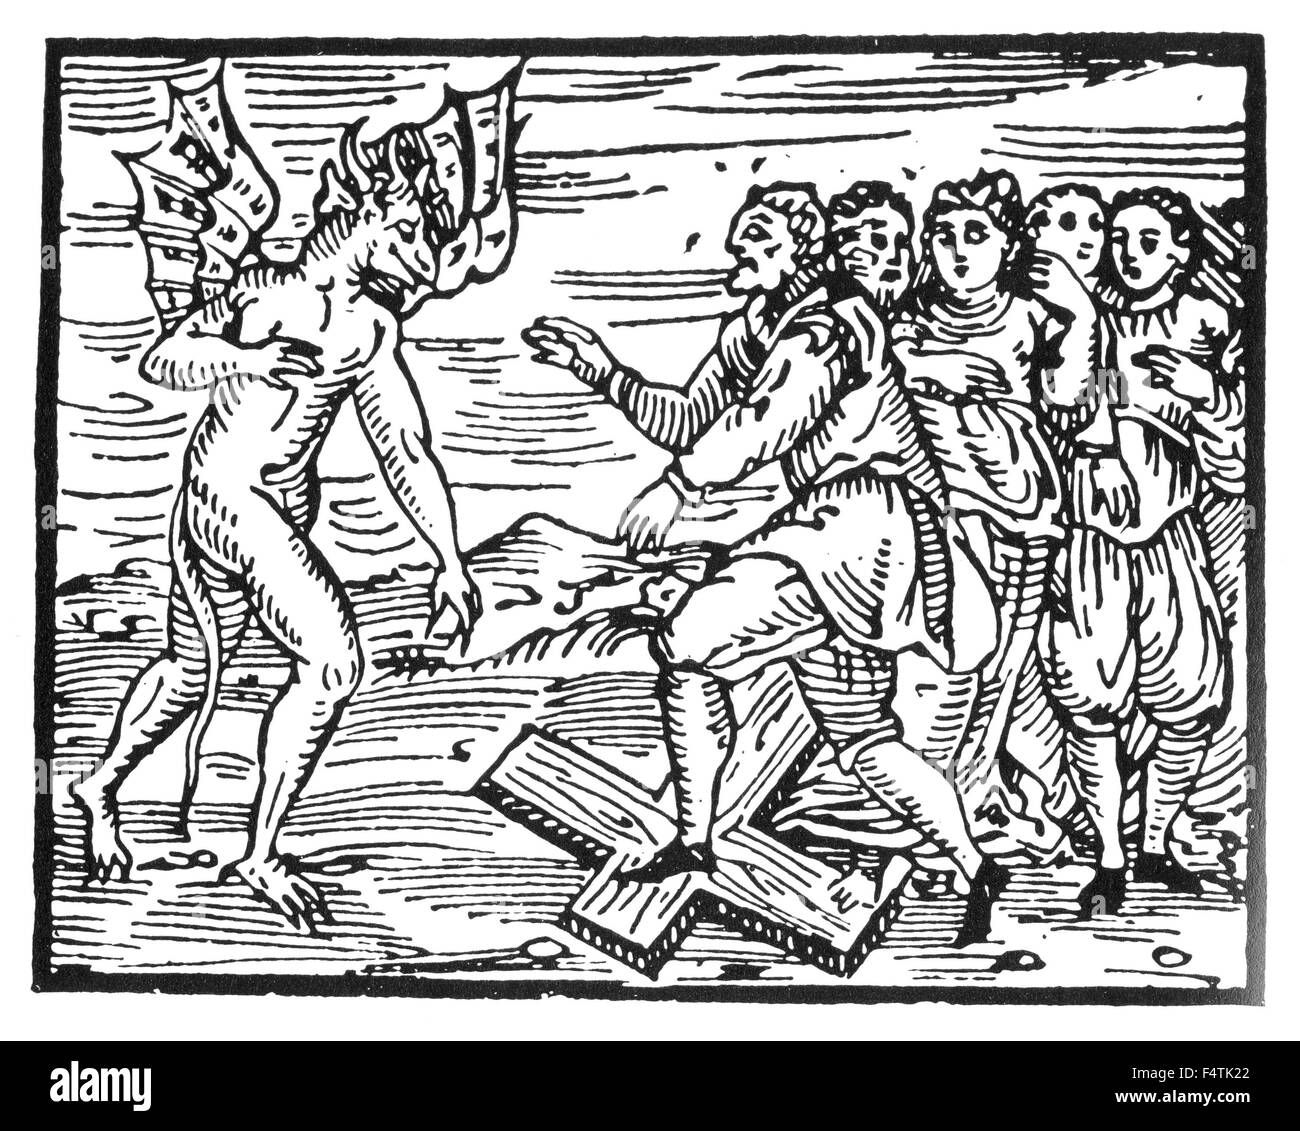 COMPENDIUM MALEFICARUM  Woodcut from the 1608 book on witches by Francesco Guazzo showing people renouncing Christ - Stock Image